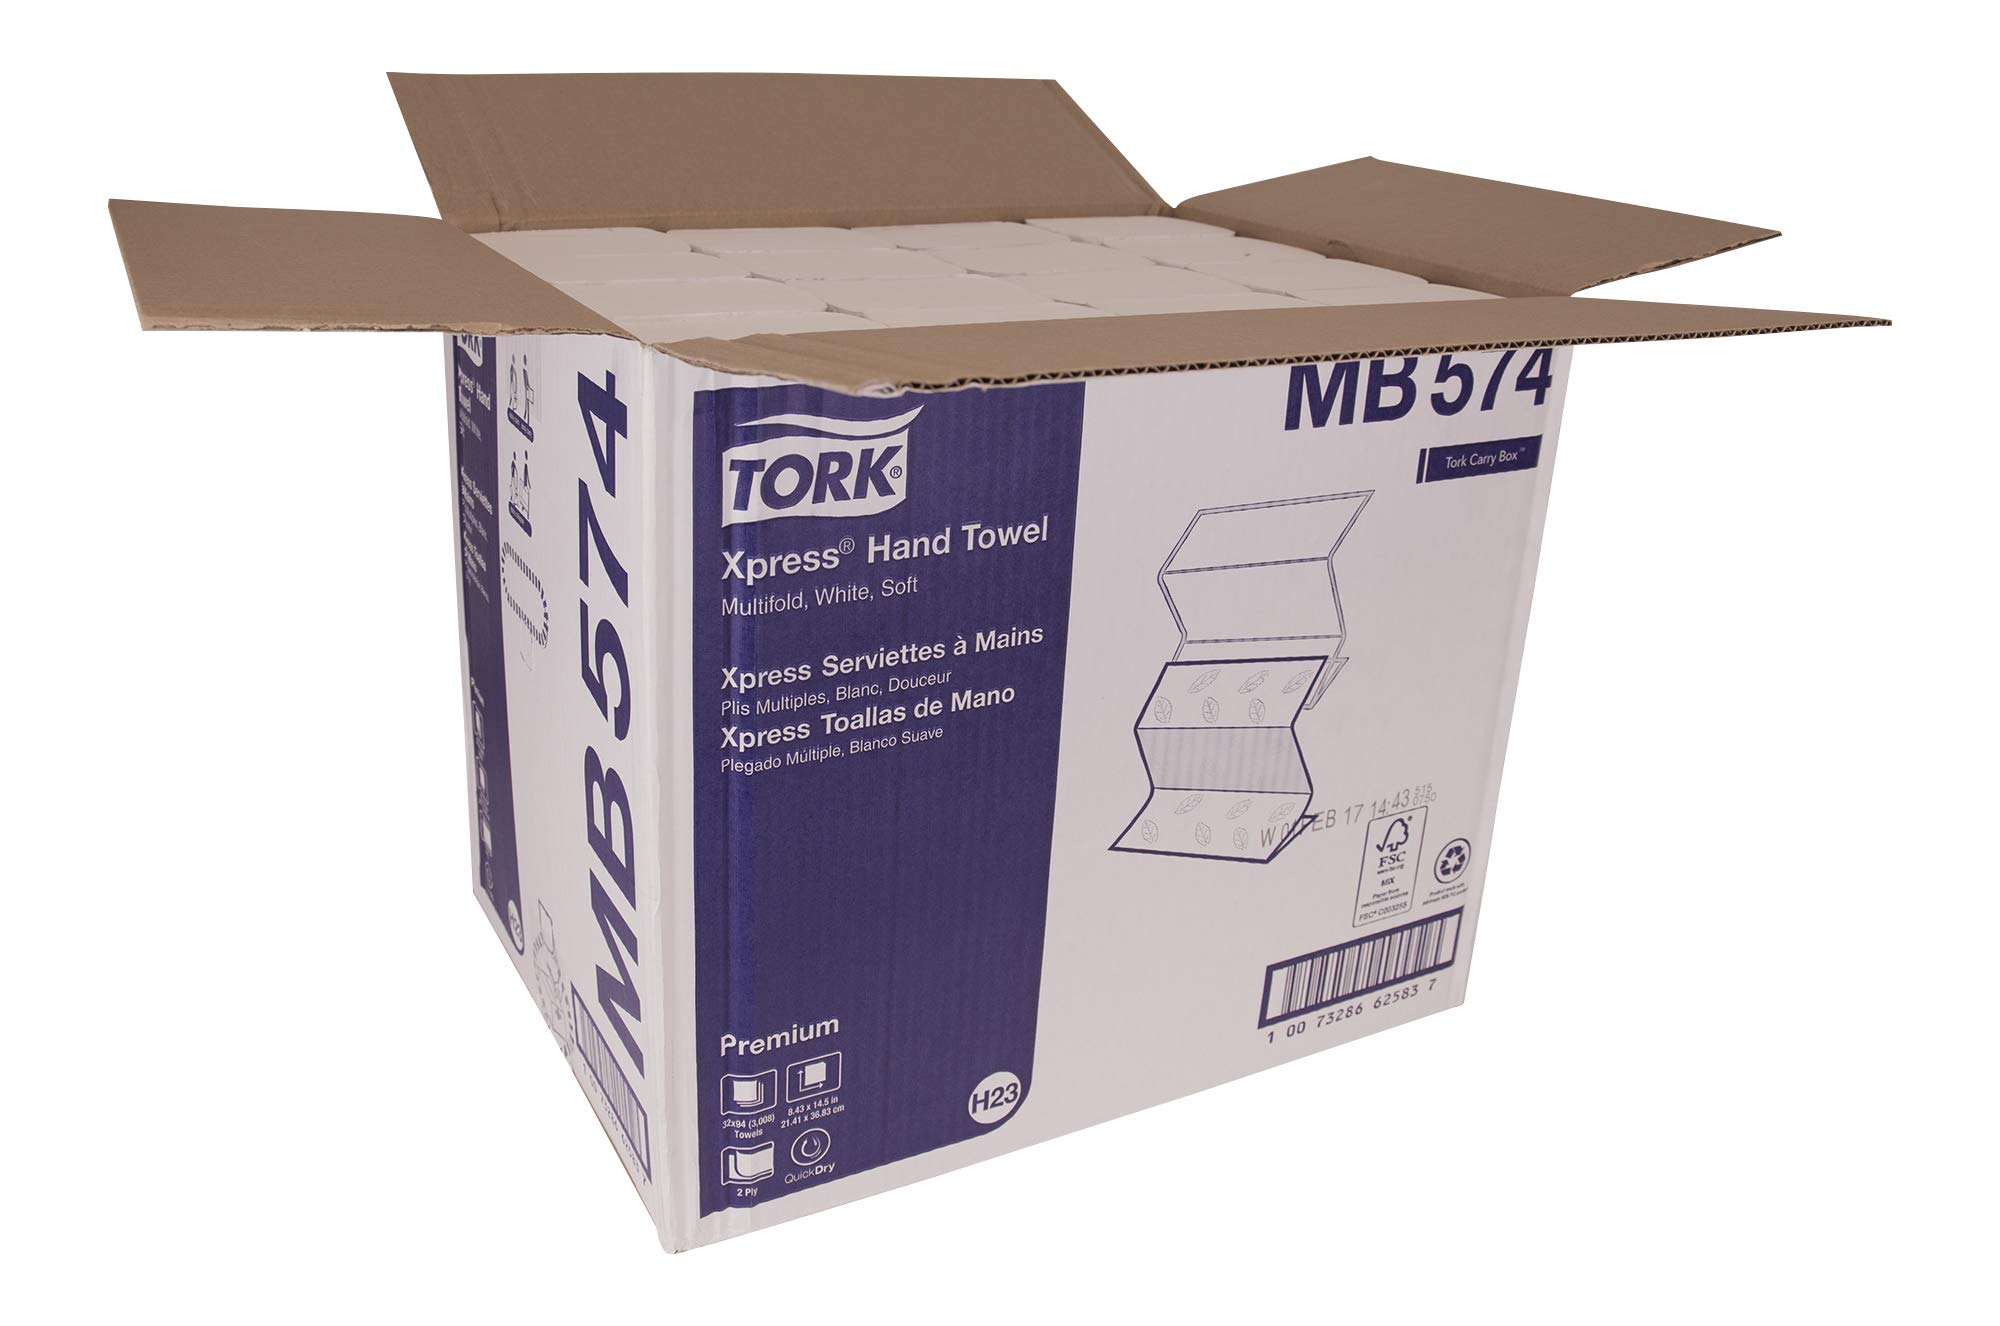 Tork Premium MB574 Soft Xpress Multifold Paper Hand Towel, 4-Panel, 2-Ply, 8.4'' Width x 14.5'' Length, White (Case of 32 Packs, 94 per Pack, 3,008 Towels) by Tork (Image #9)